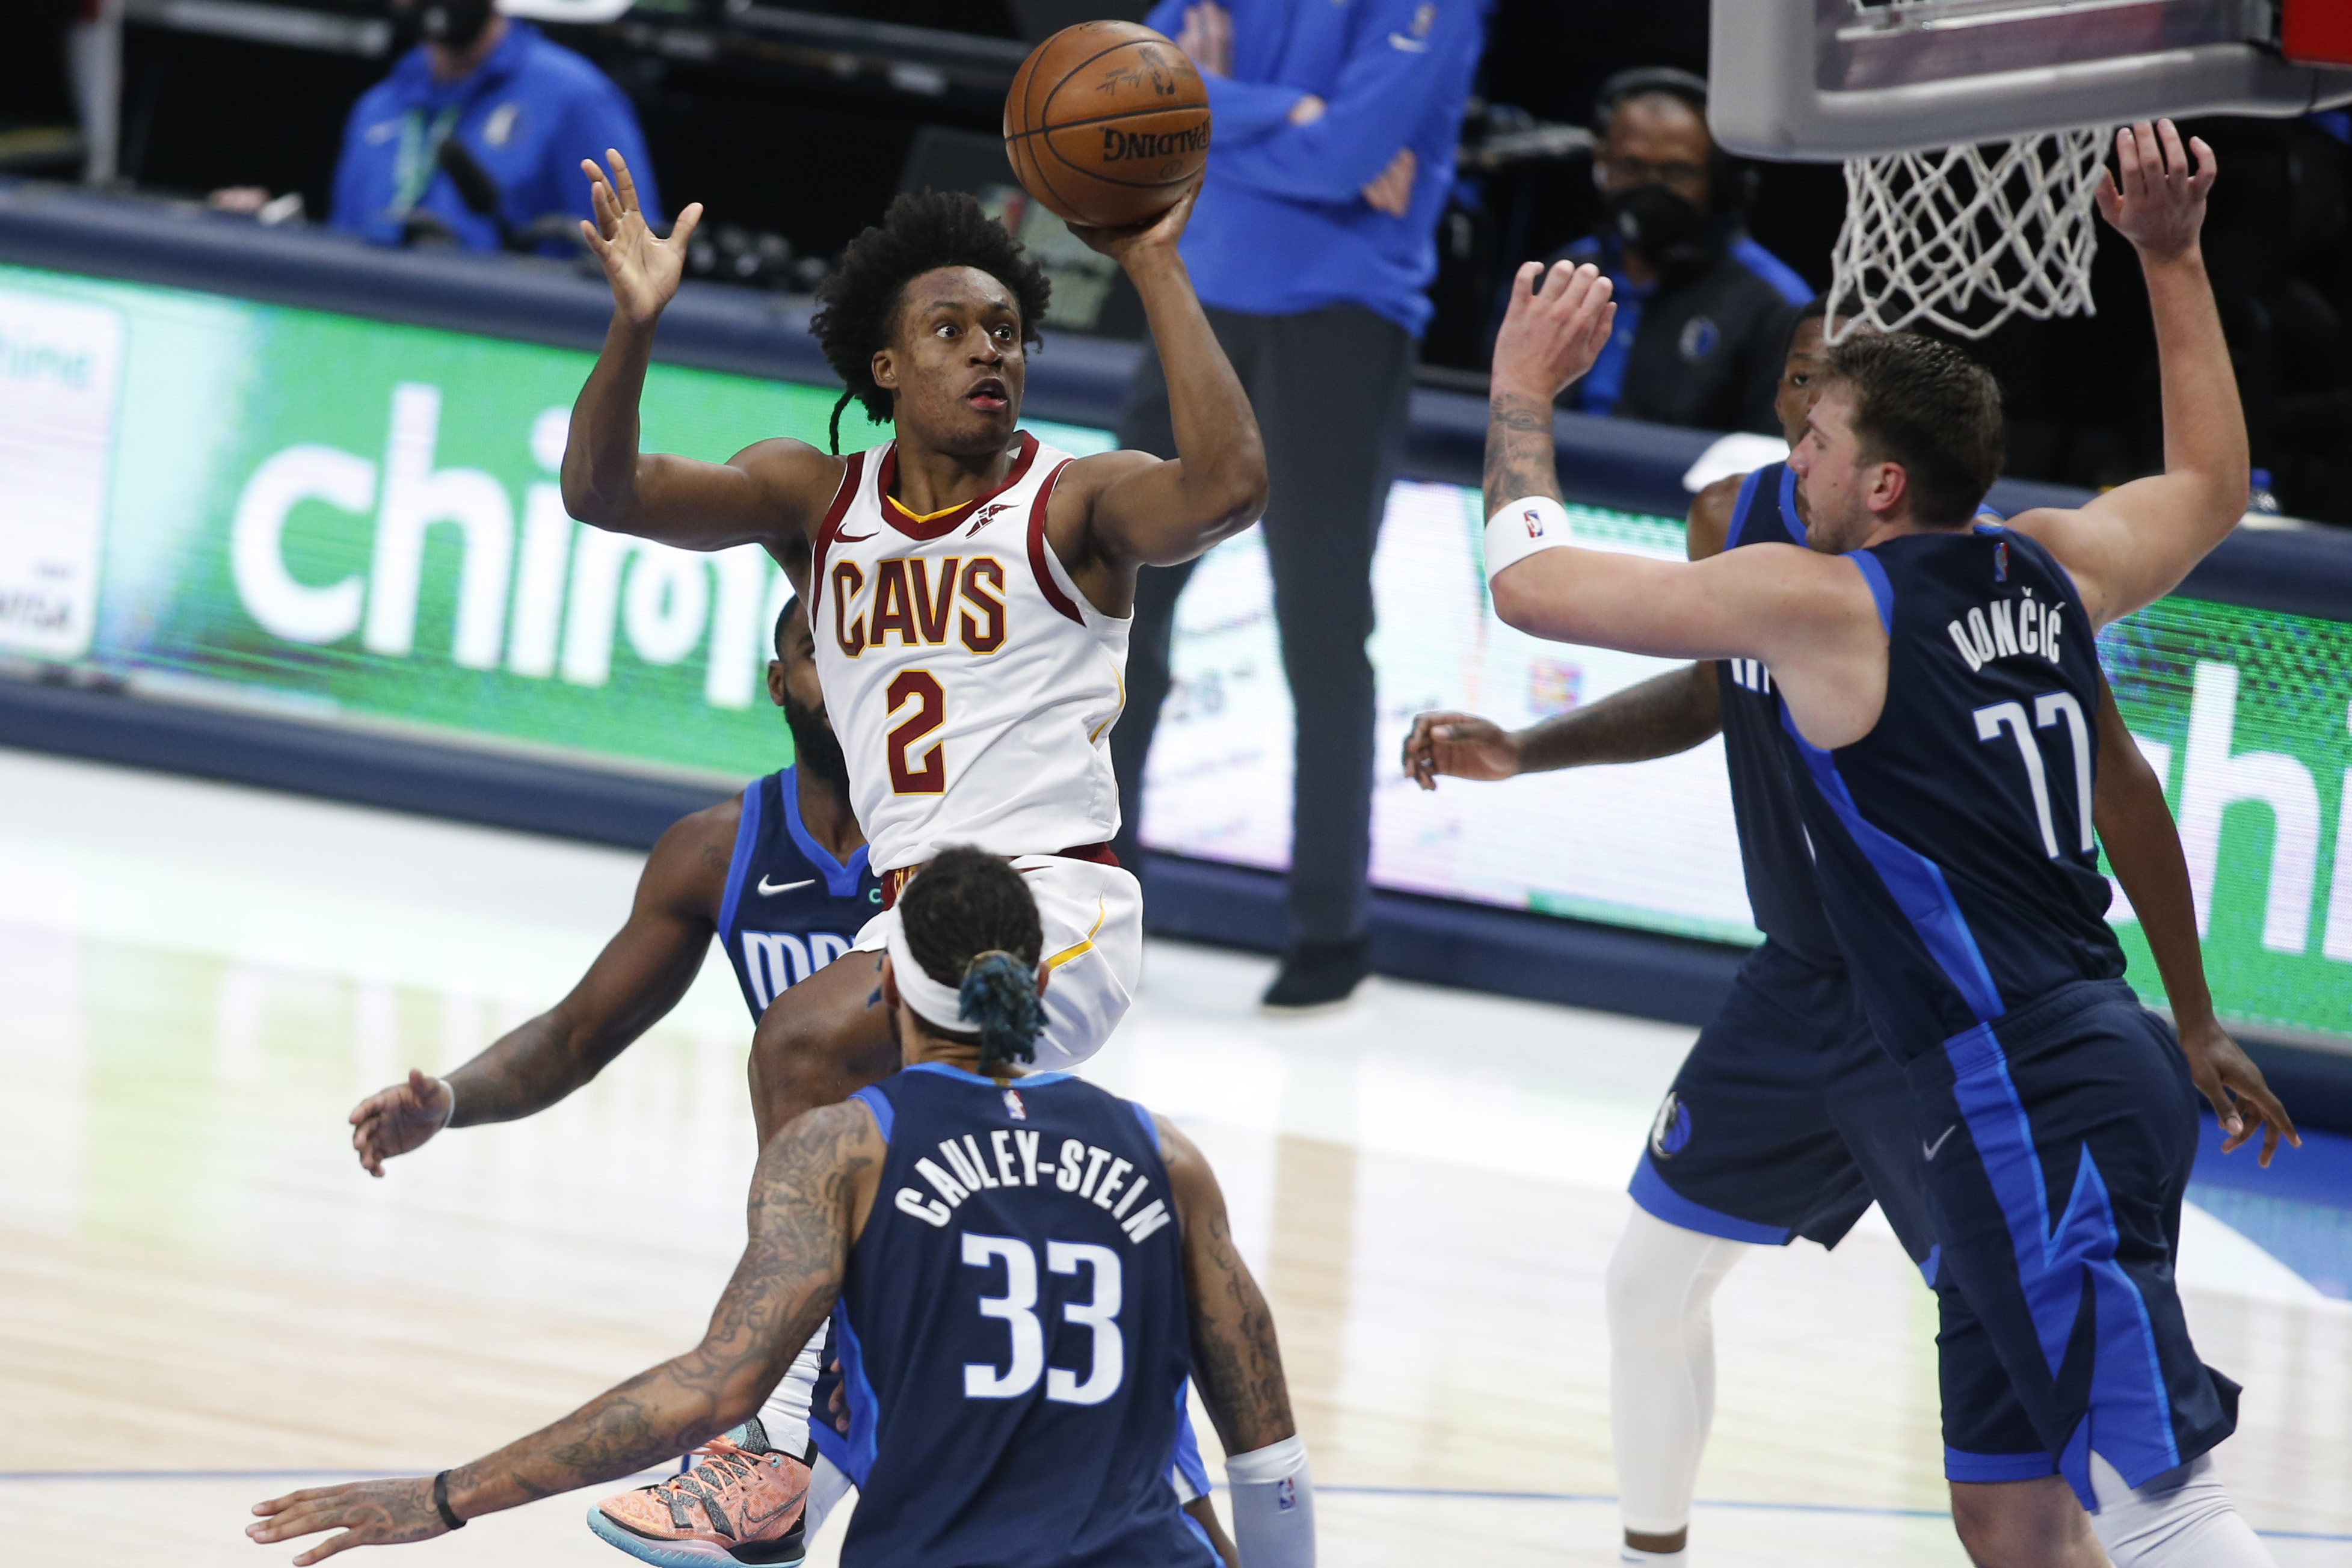 May 7, 2021; Dallas, Texas, USA; Cleveland Cavaliers guard Collin Sexton (2) drives against Dallas Mavericks guard Luka Doncic (77) during the third quarter at American Airlines Center. Mandatory Credit: Tim Heitman-USA TODAY Sports